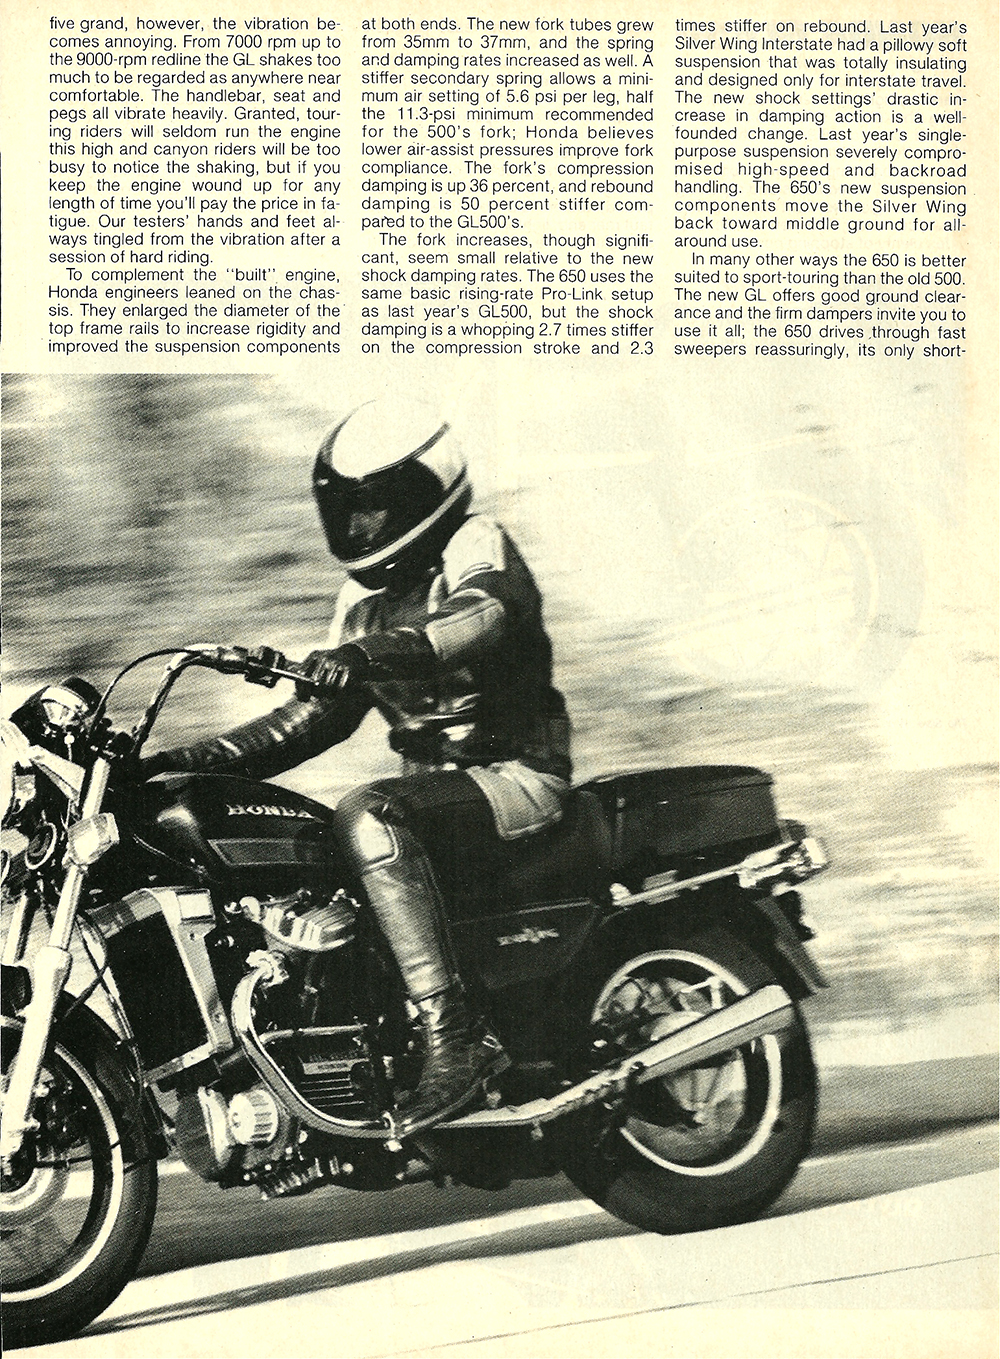 1983 Honda GL650 Silver Wing road test 5.jpg